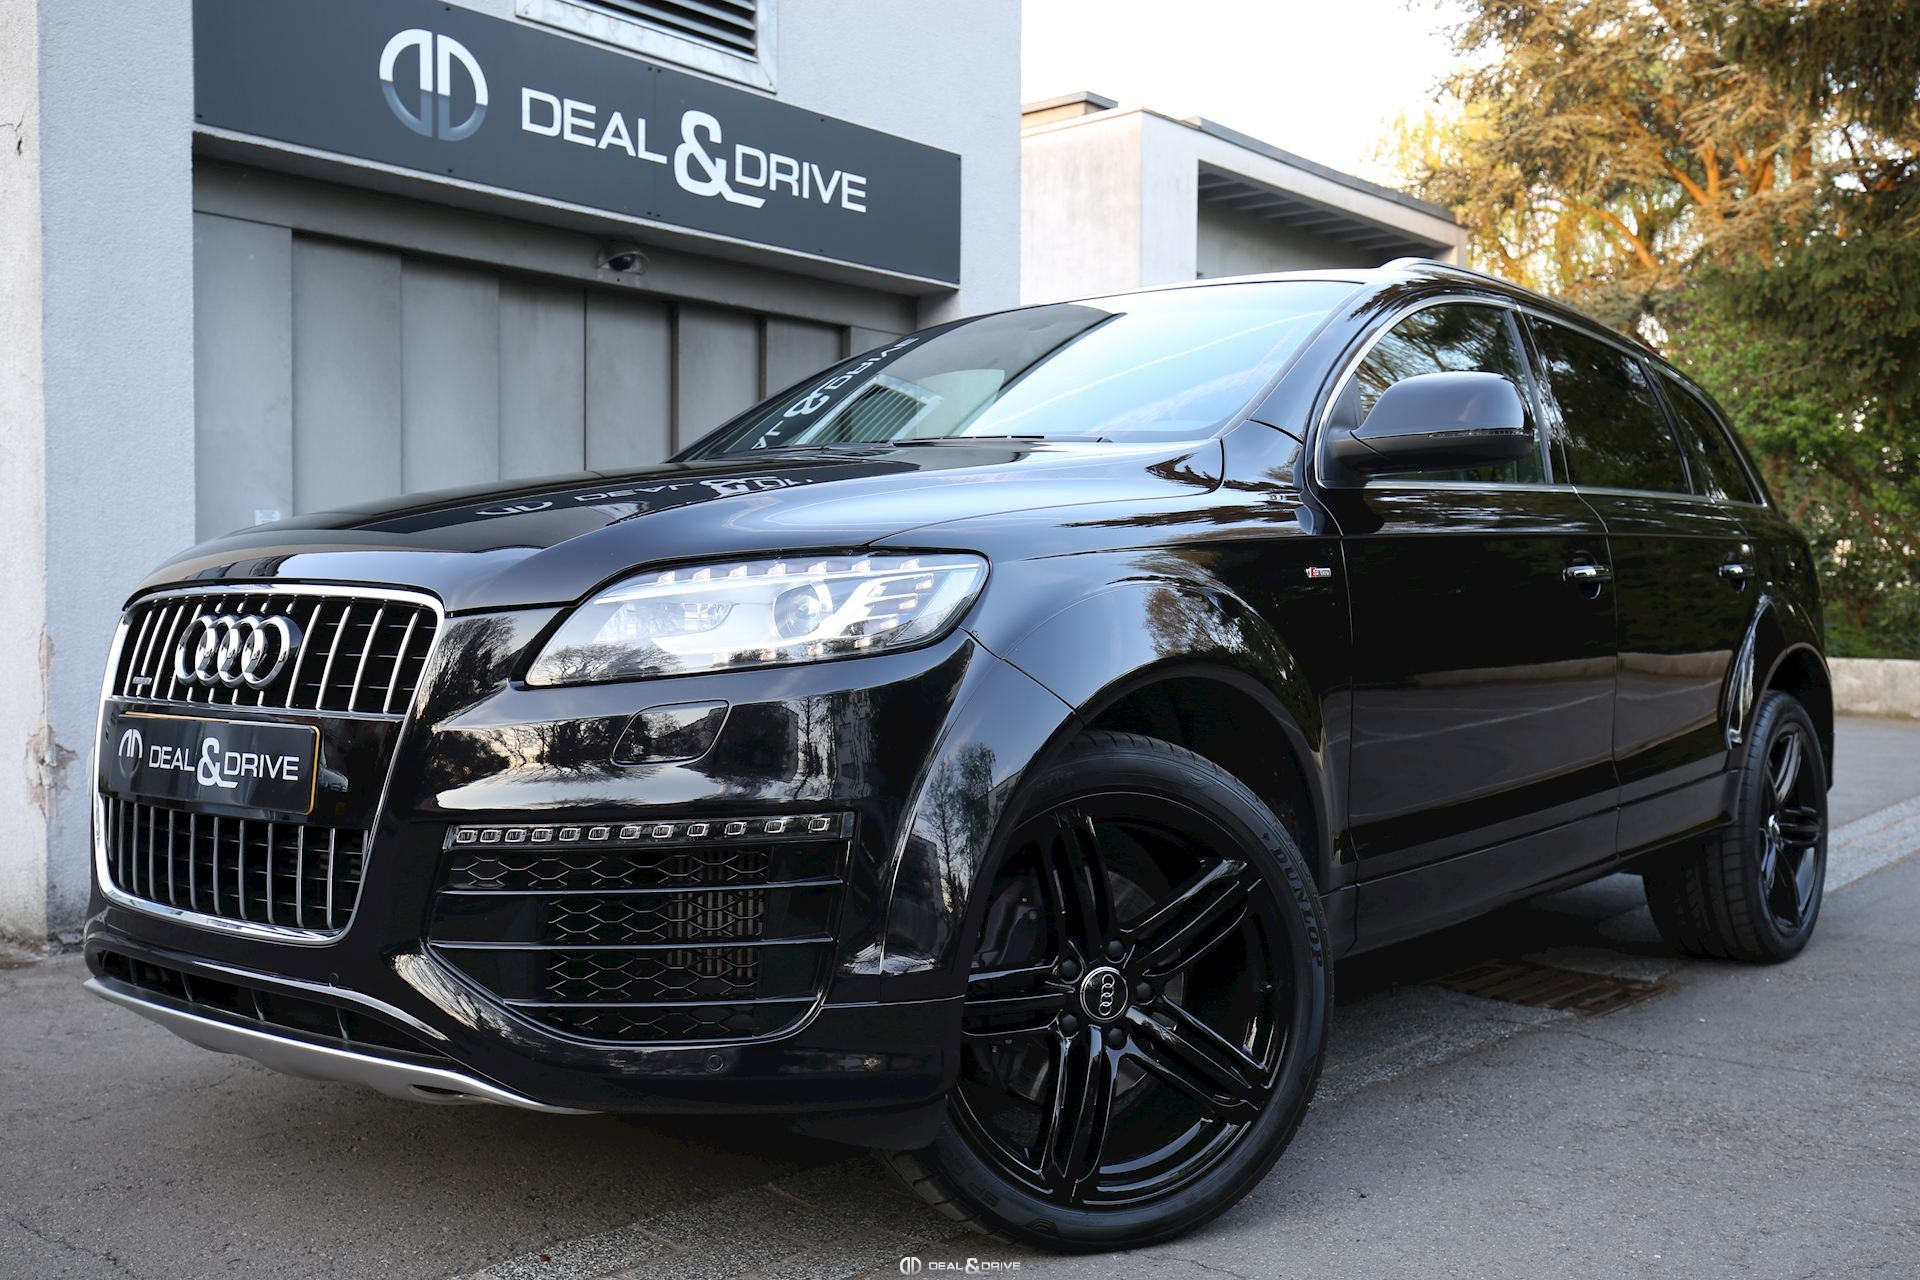 audi q7 3 0 tdi quattro s line 7 seat deal drive. Black Bedroom Furniture Sets. Home Design Ideas